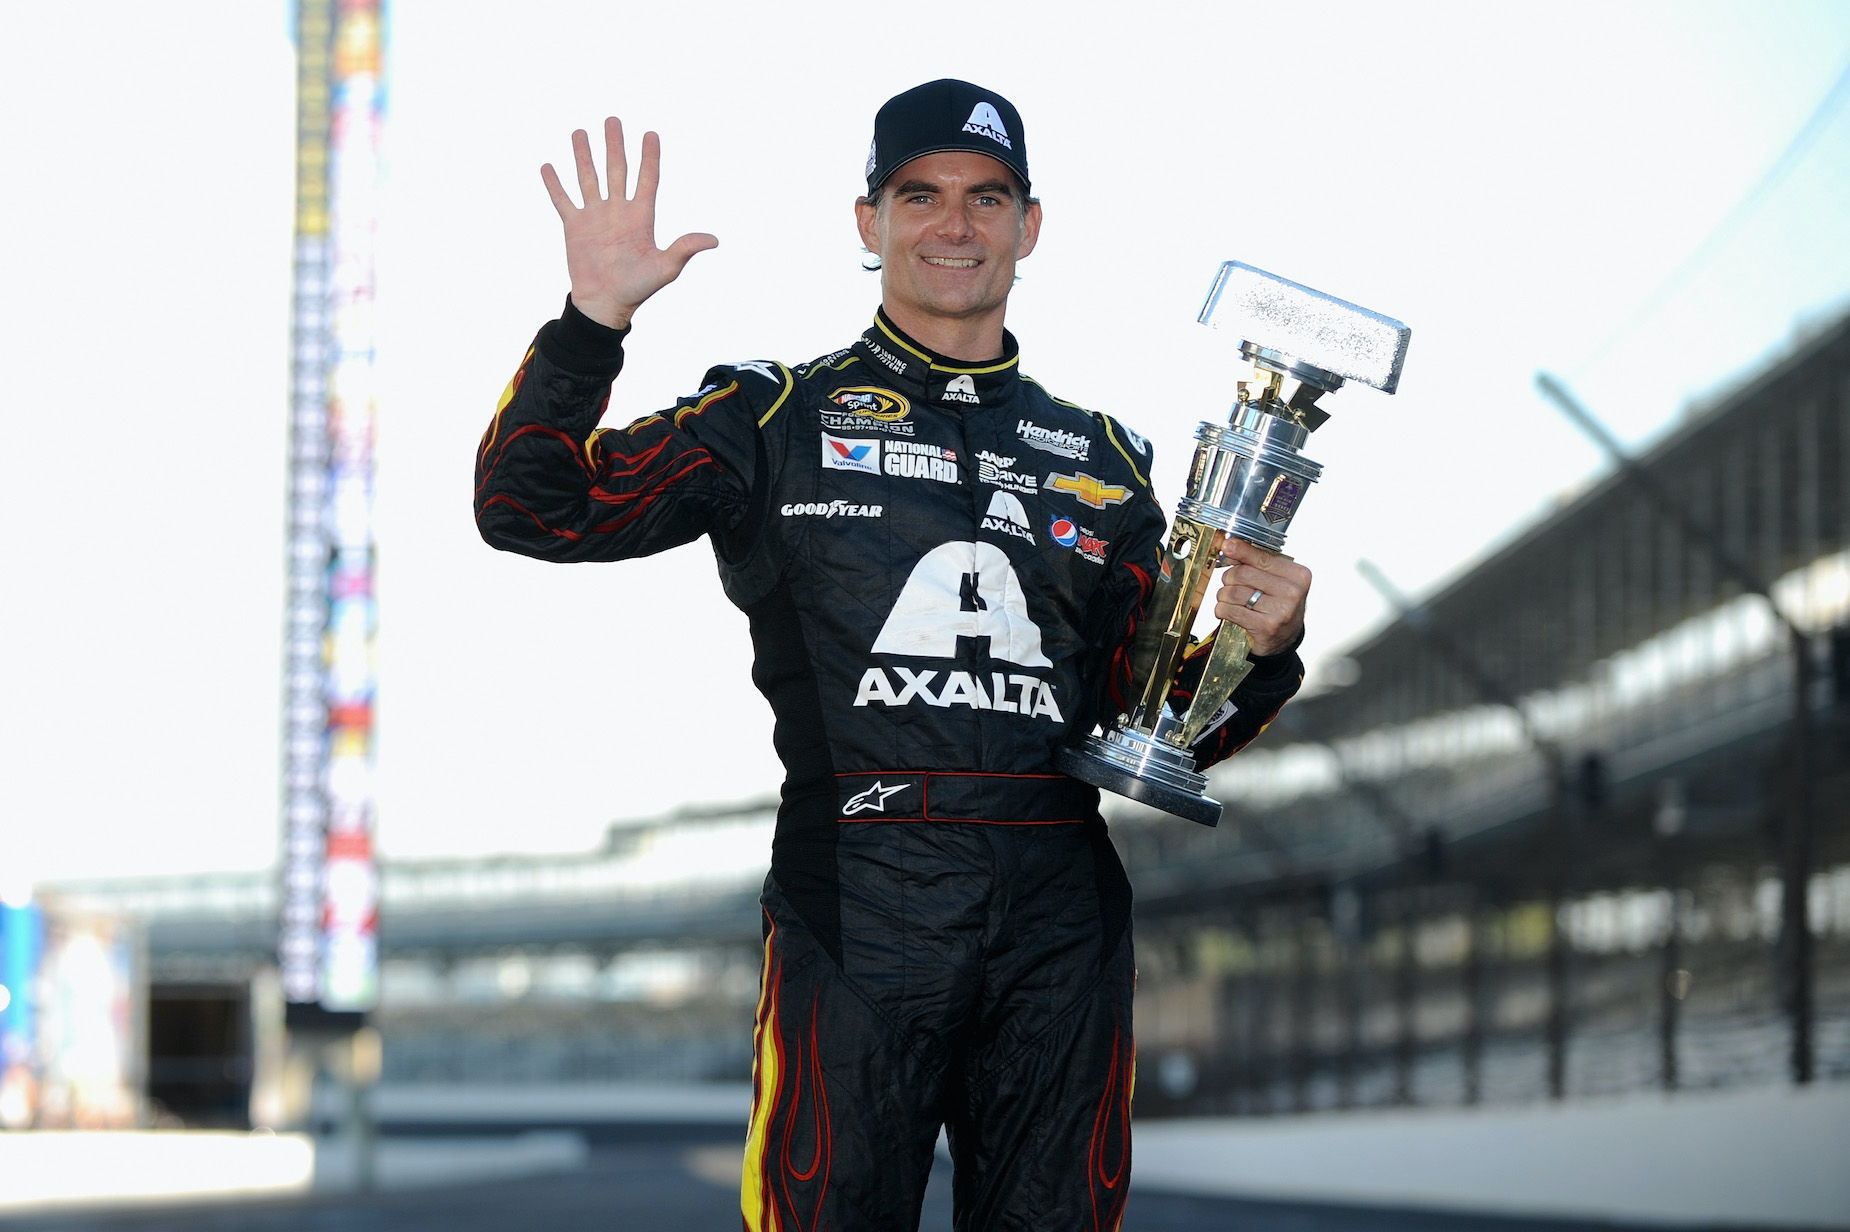 Jeff Gordon briefly flirted with a career as a professional waterskier before building up a massive net worth in NASCAR.